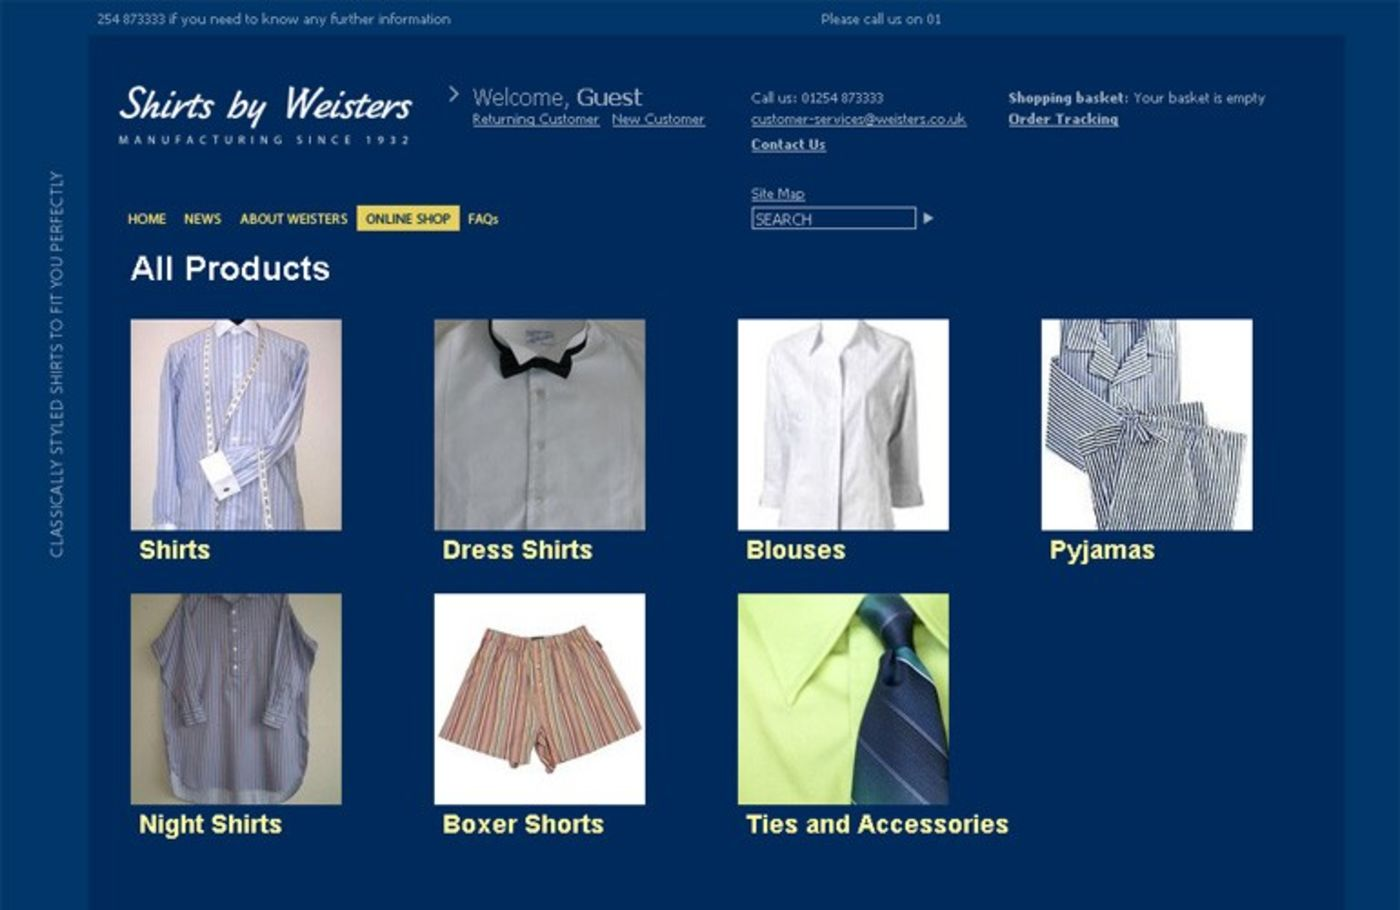 Shirts by Weisters All Products